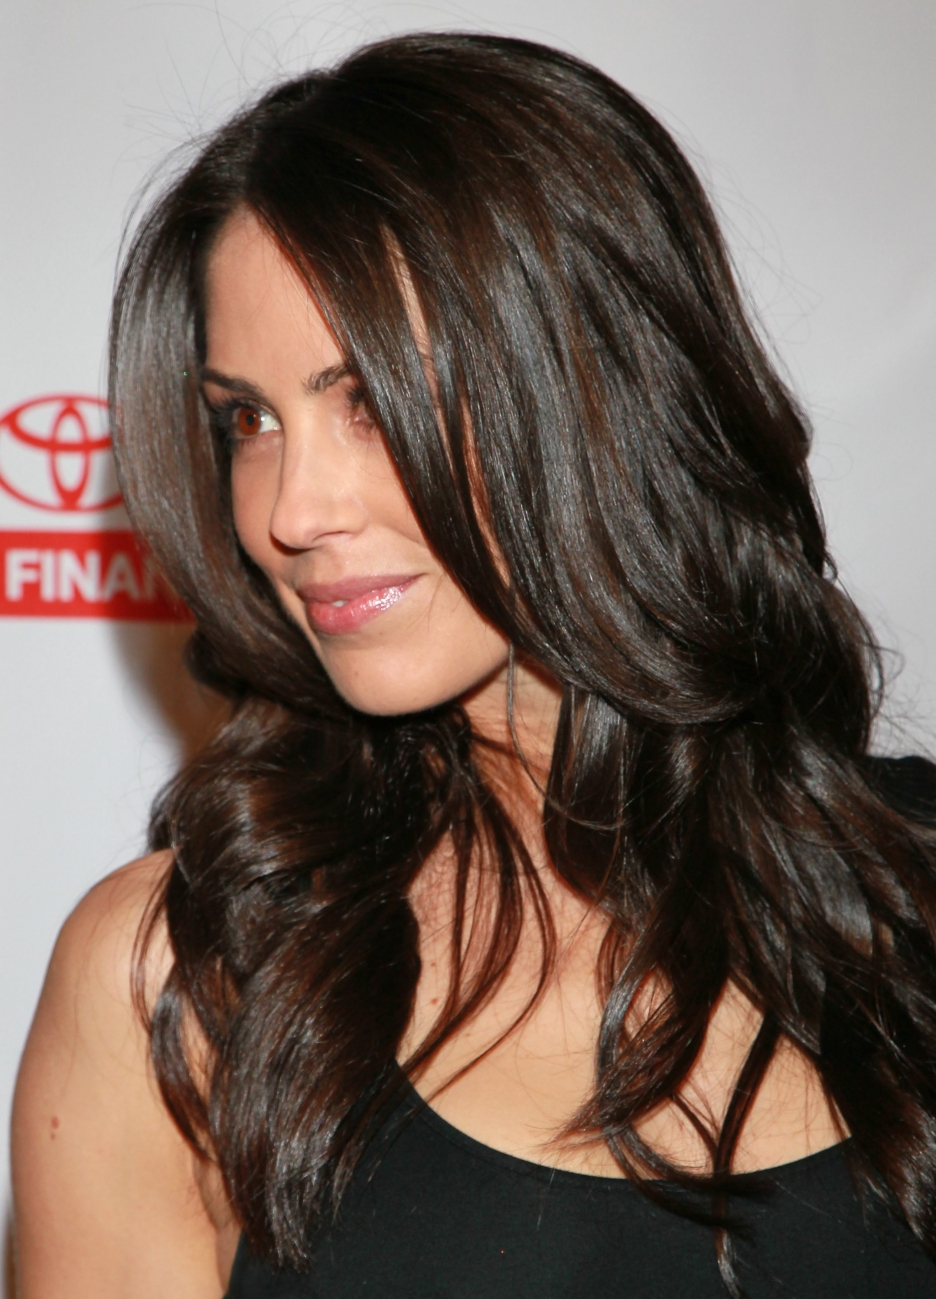 Pictures Of Michelle Borth Pictures Of Celebrities